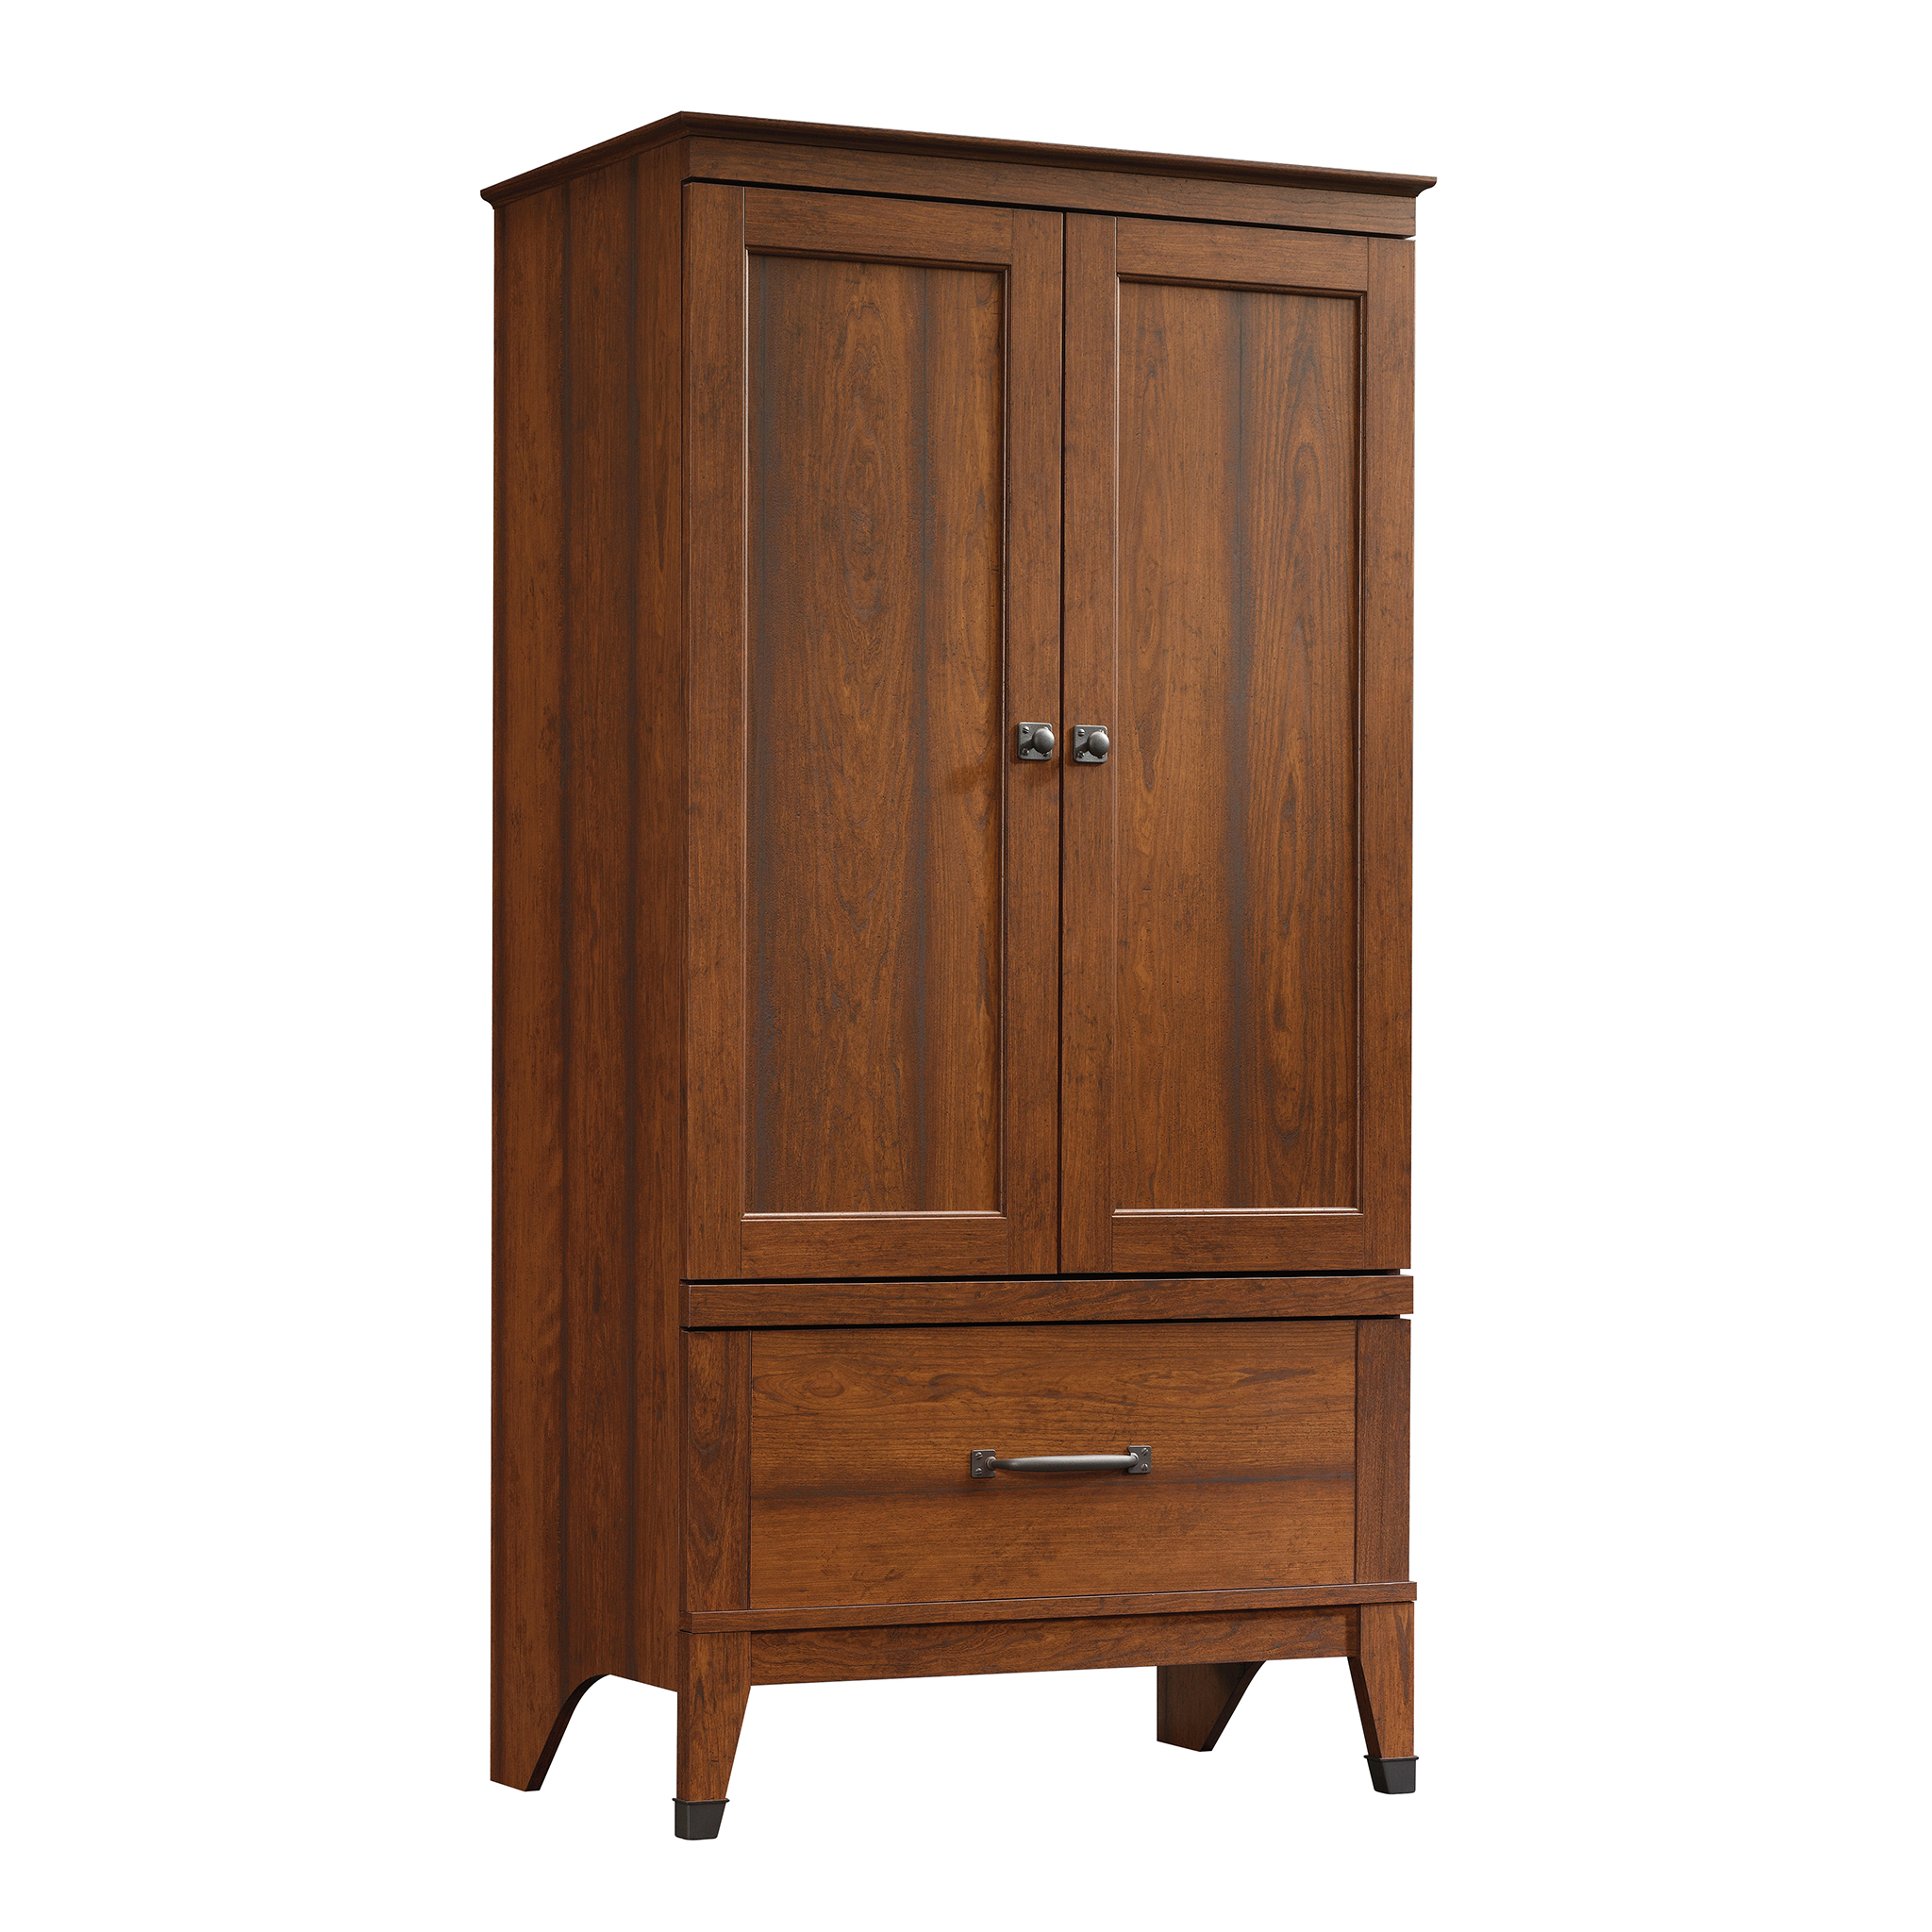 Bon Sauder Carson Forge Armoire, Washington Cherry Finish